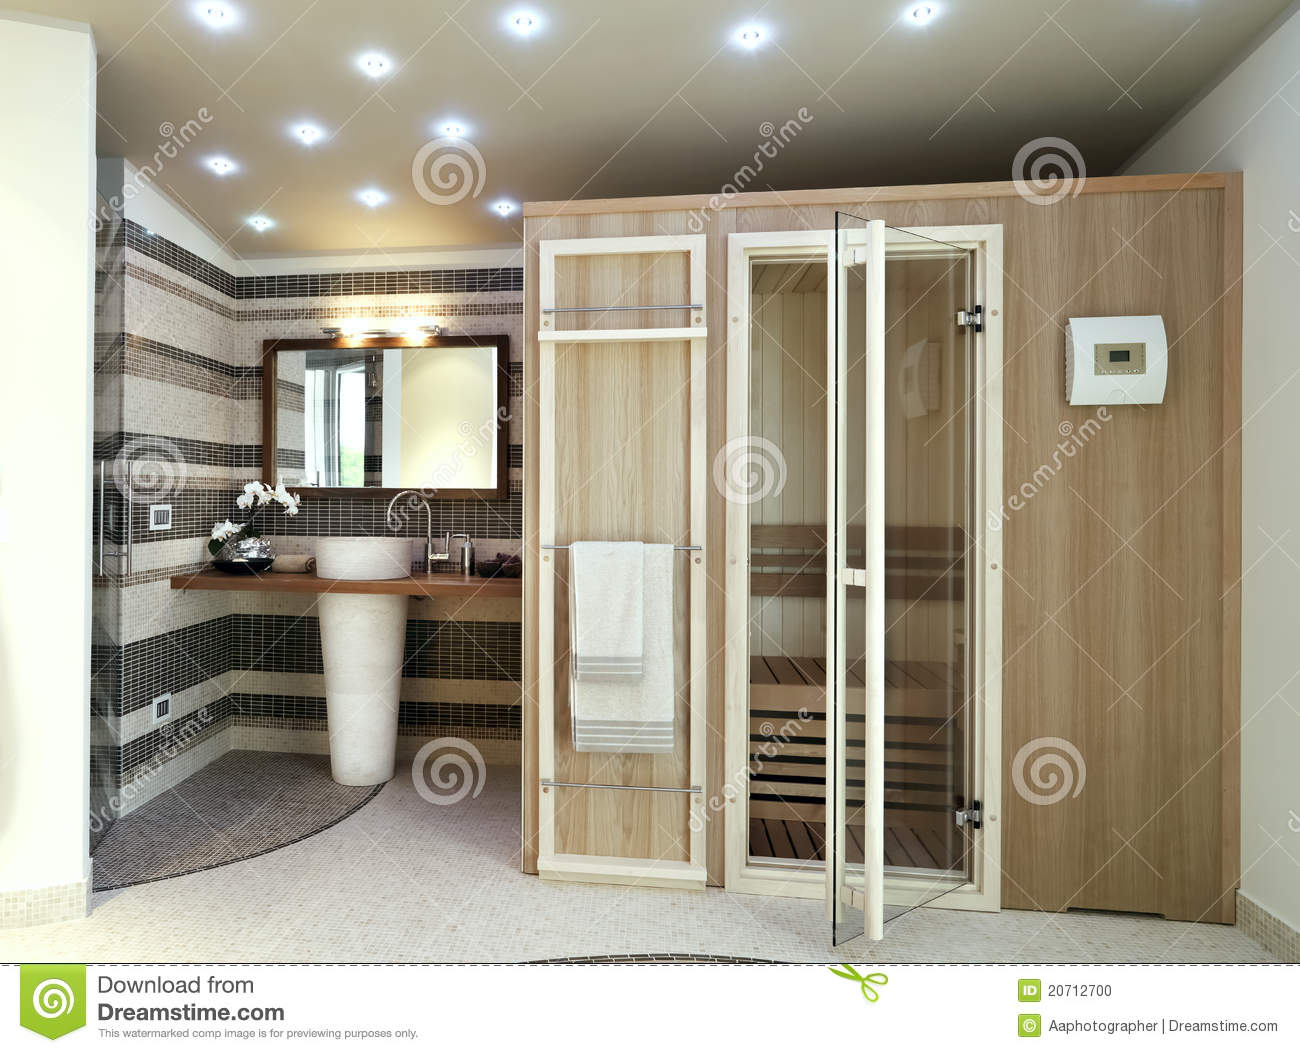 modernes badezimmer mit sauna stockfoto bild von cozy badezimmer 20712700. Black Bedroom Furniture Sets. Home Design Ideas